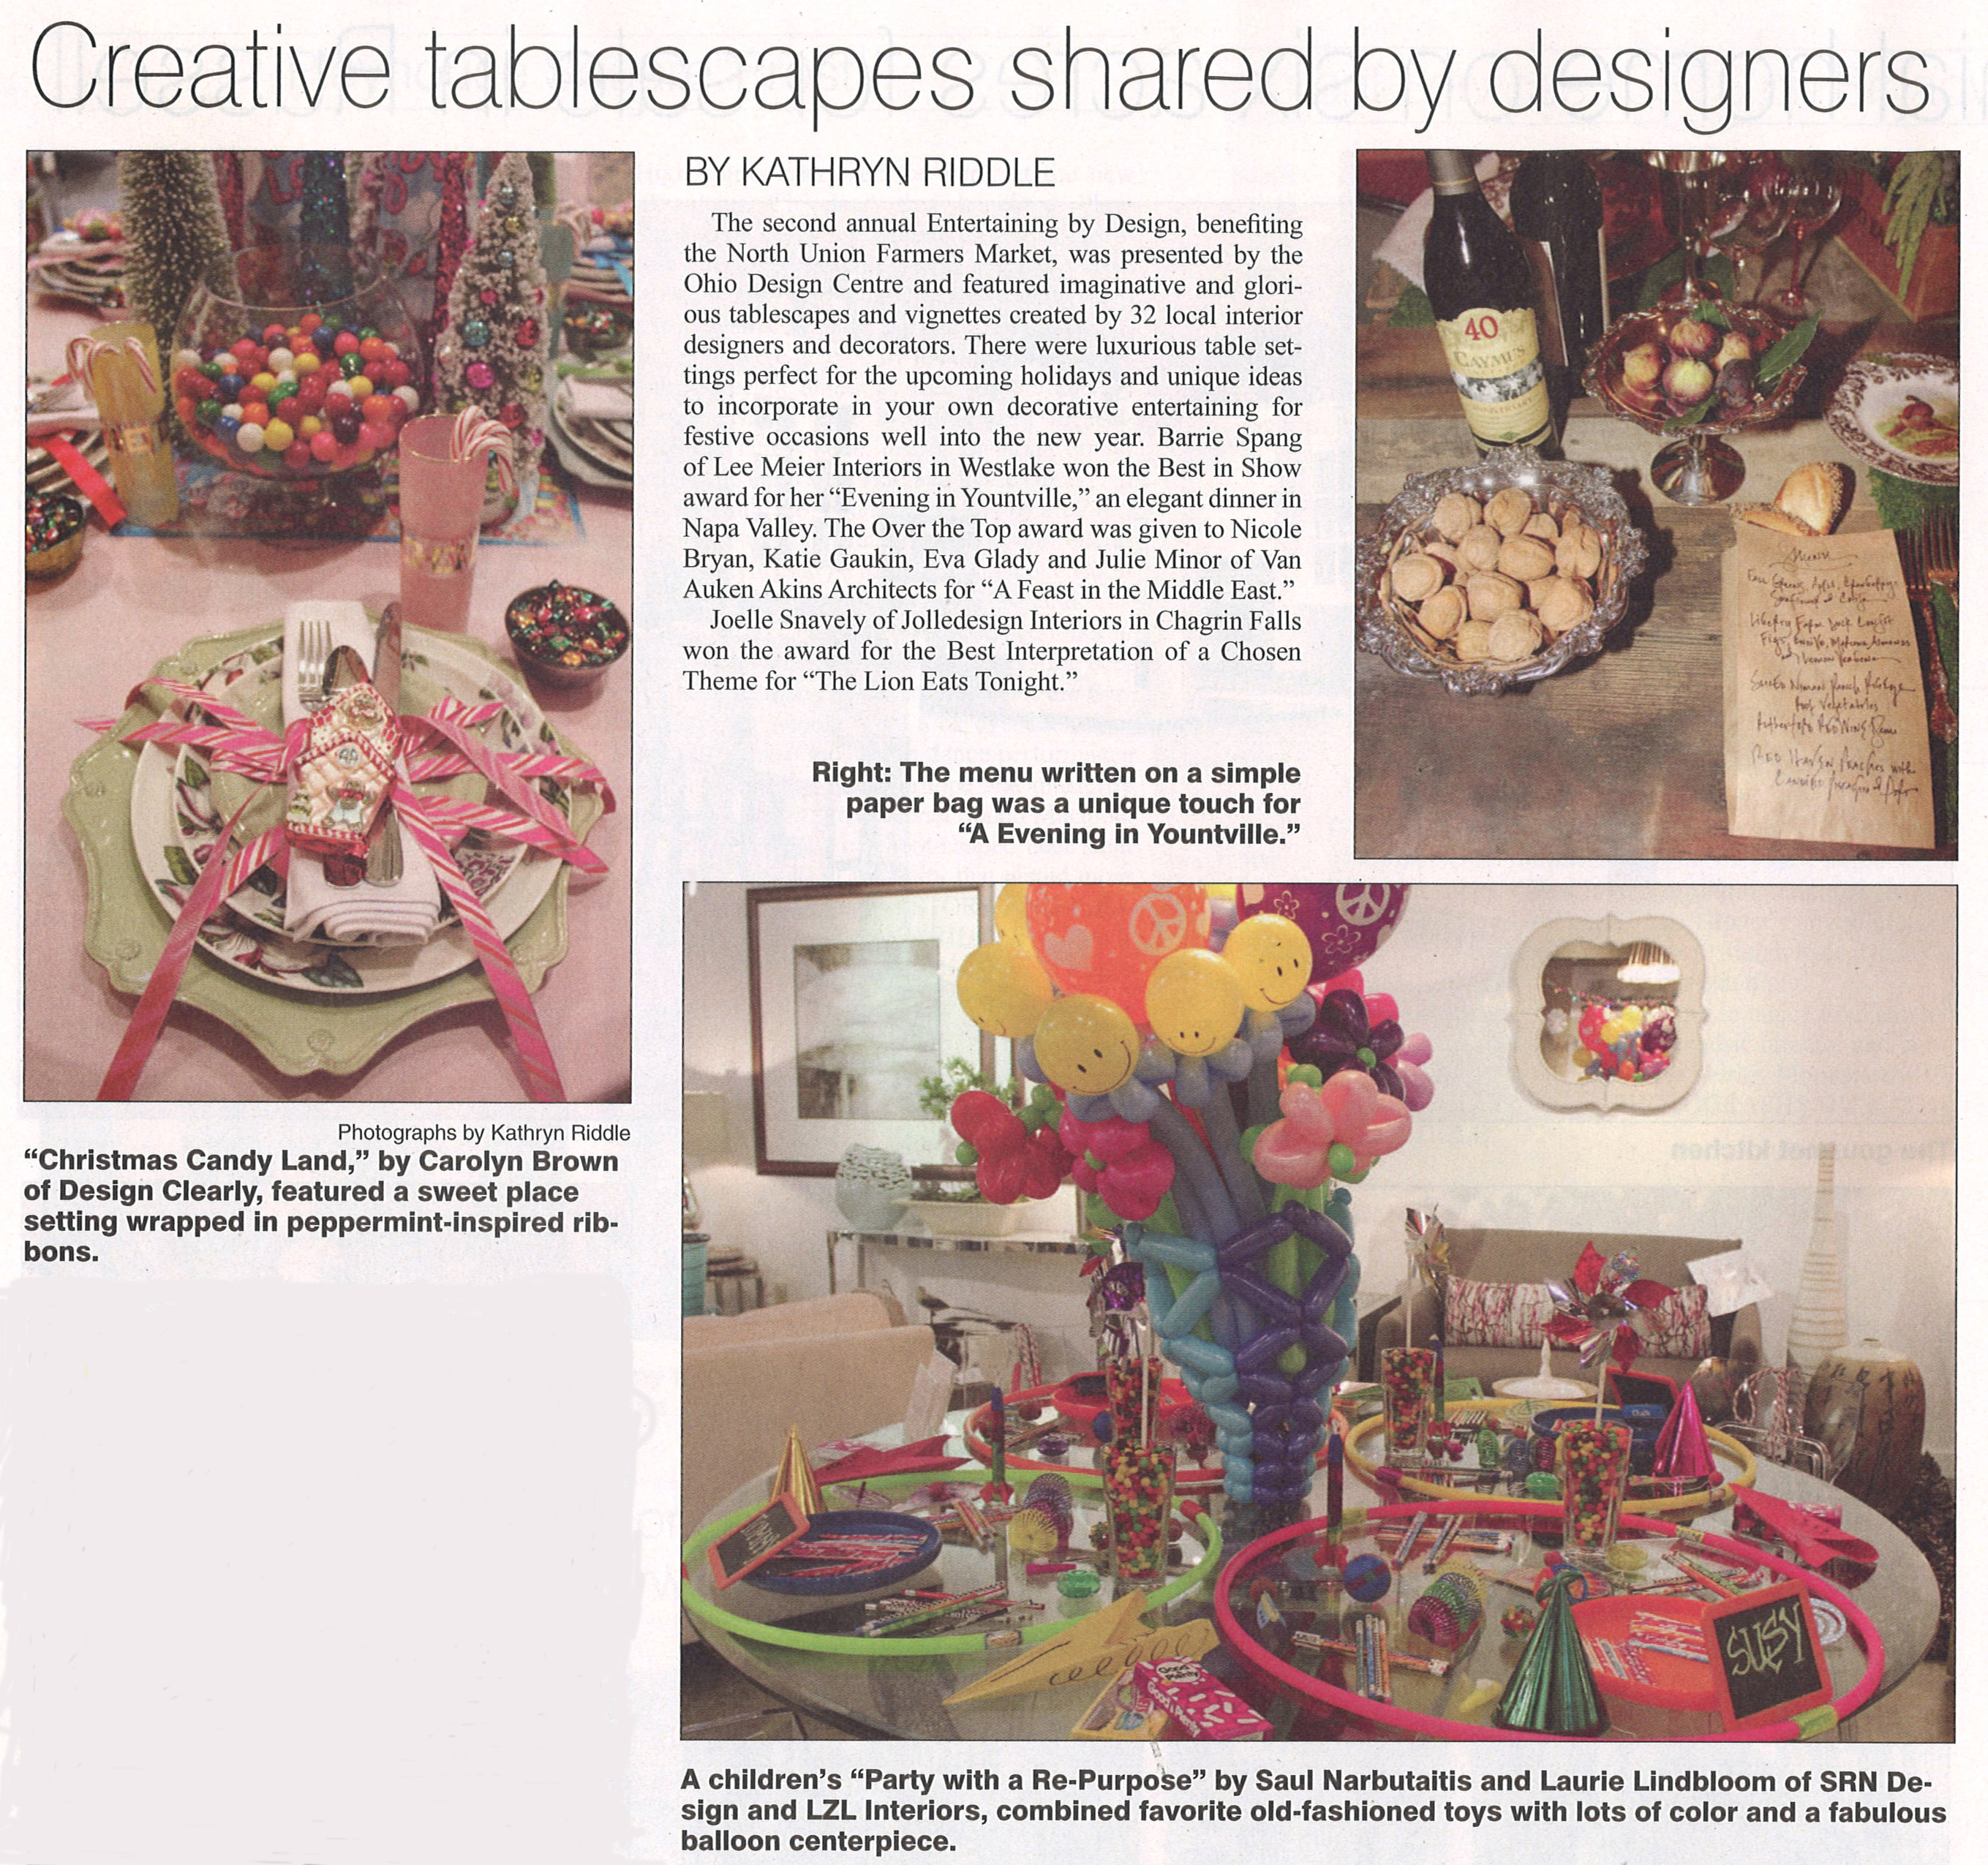 Creative tablescapes shared by designers